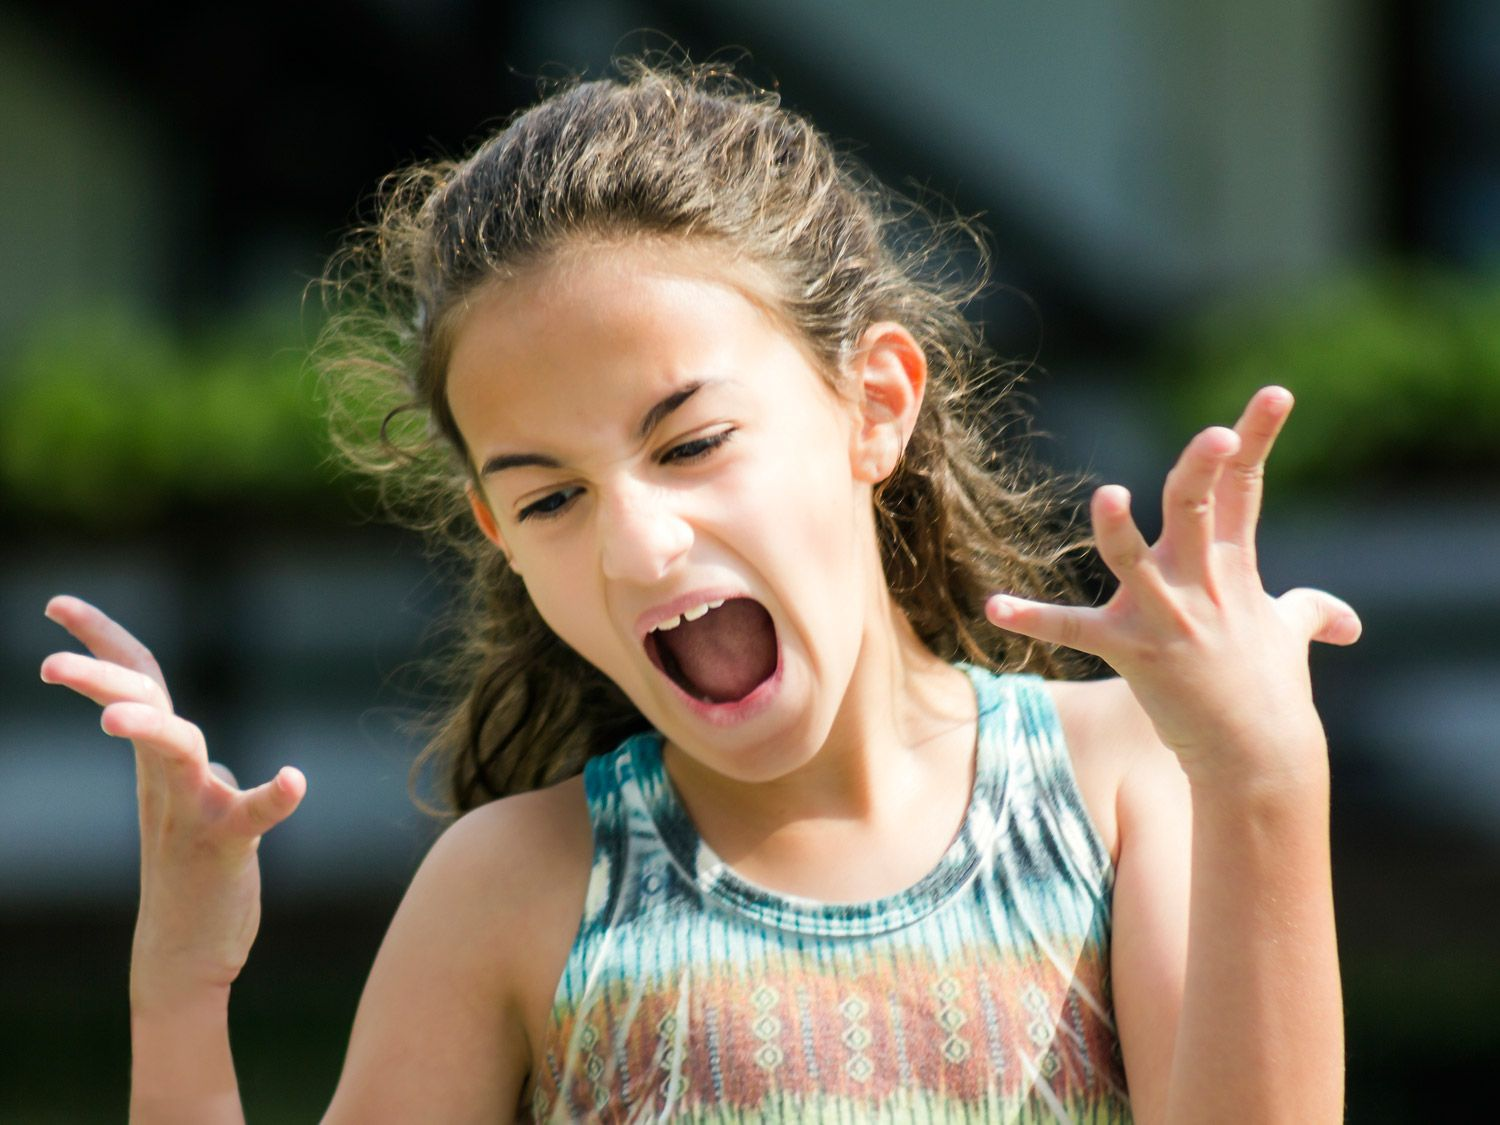 5 Parenting Styles That Cause Entitlement In Kids